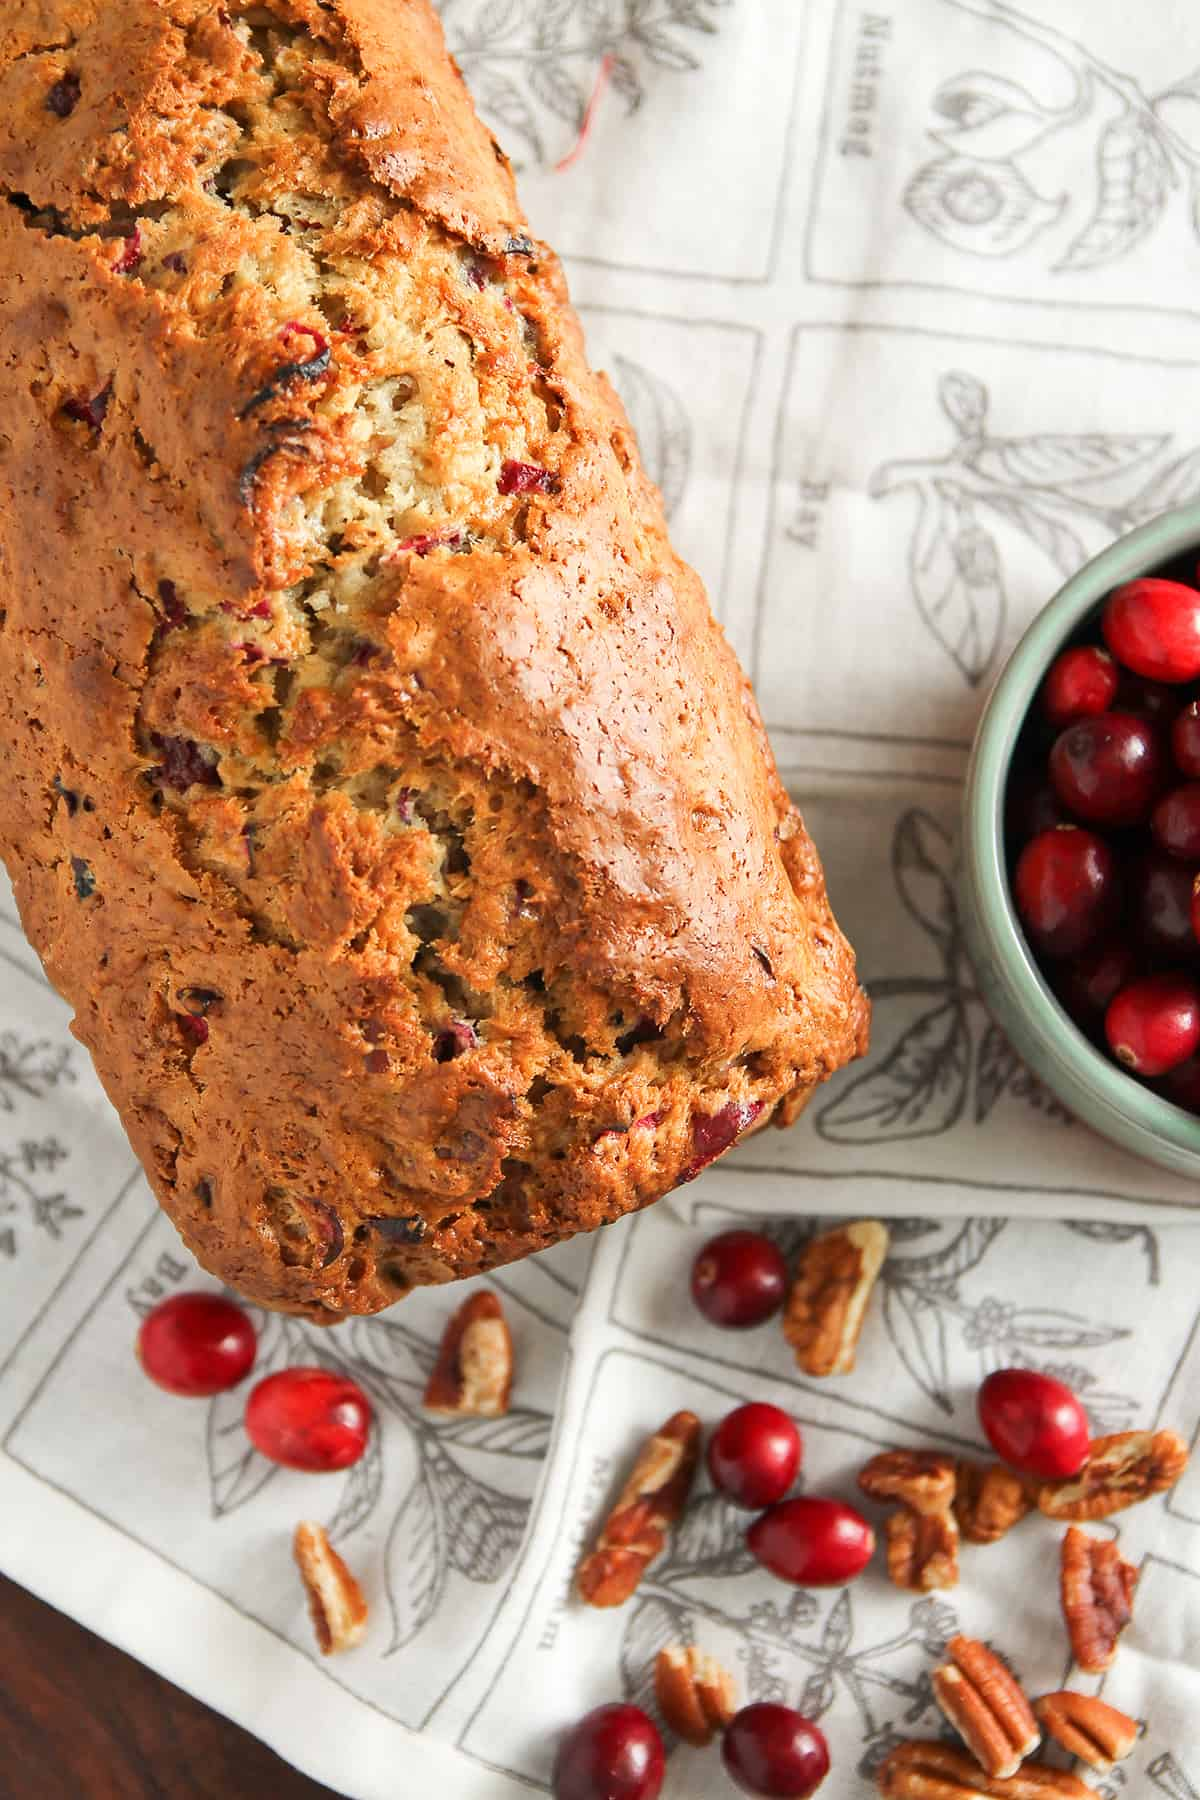 Cranberry Nut Bread is tart and sweet, and so easy you'll want to make it again and again.